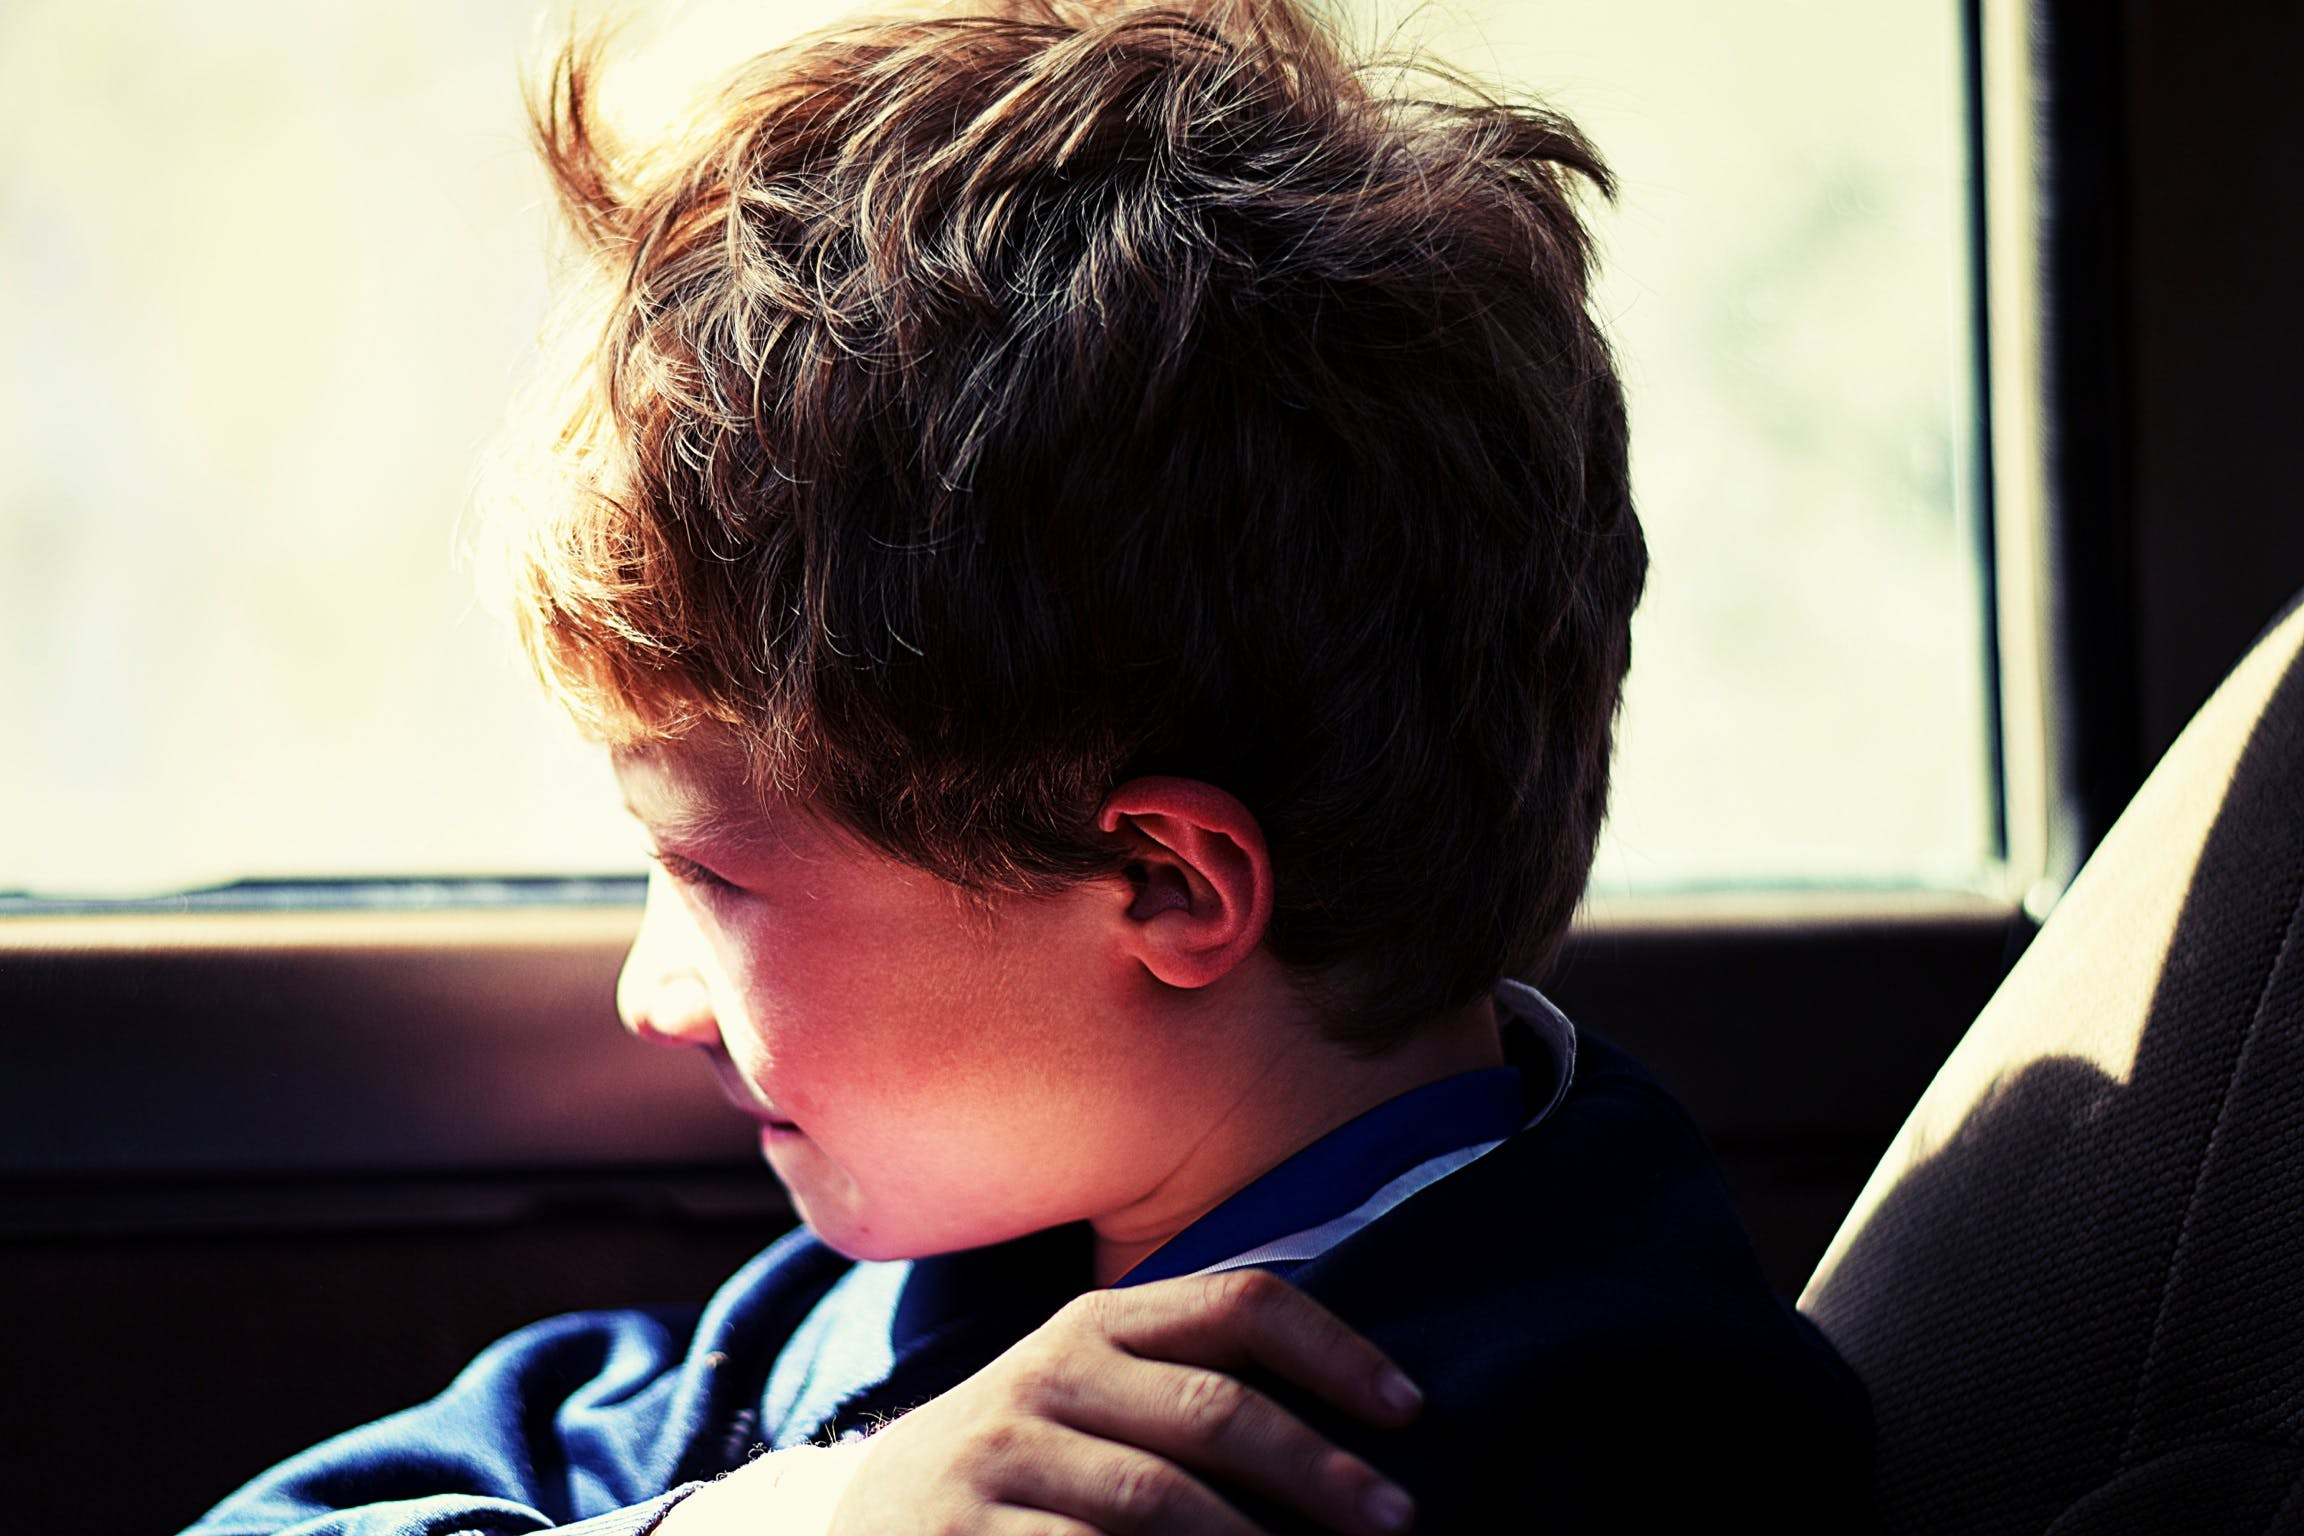 Boy in Blue Jacket Sitting Next to Vehicle Window